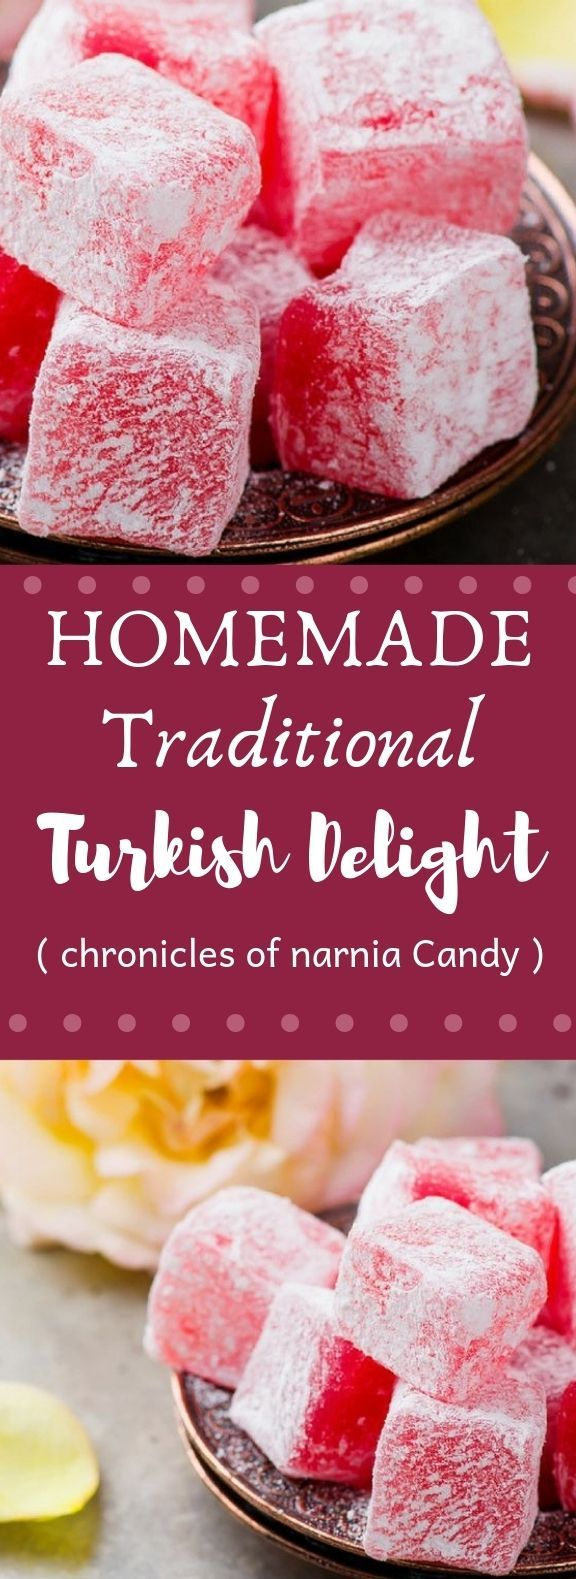 Homemade Traditional Turkish Delight Candy Desserts Homemade Turkish Delight Christmas Food Desserts Food